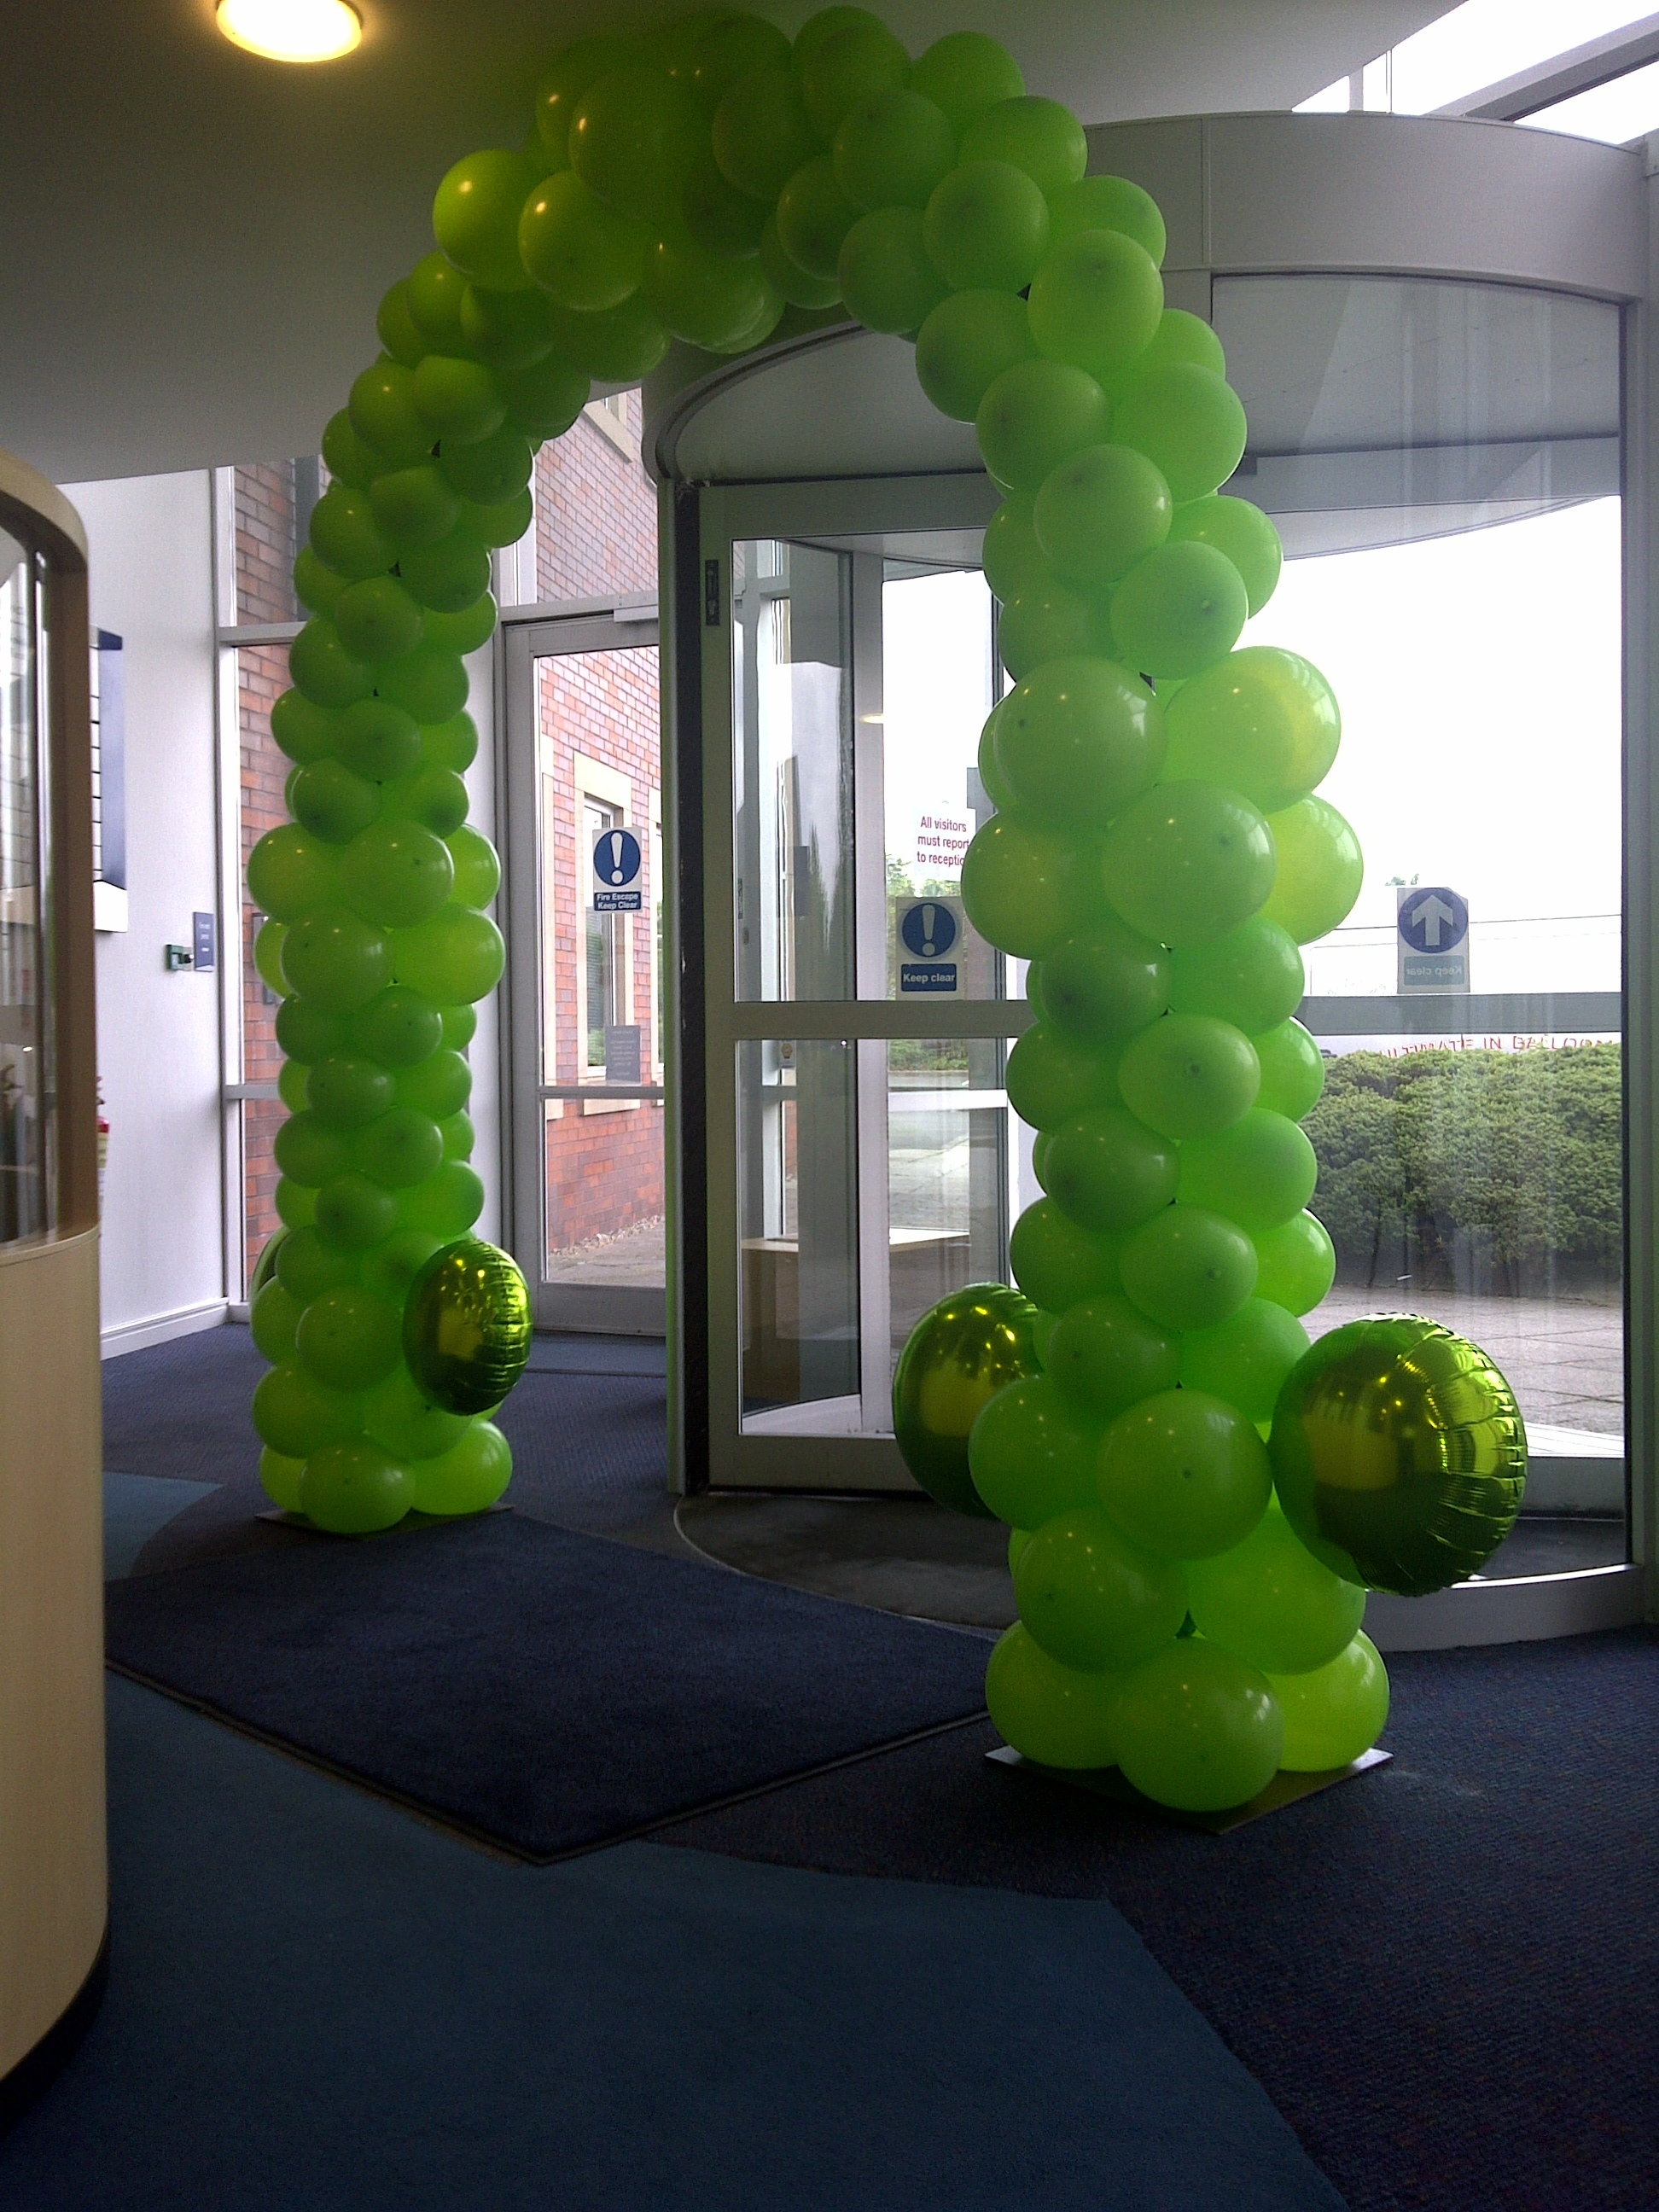 If Light At End Of Tunnel Is Green You >> Matthew Lewis Displays and Special Occasion Foils   Award Winning Balloon Decoration for Parties ...